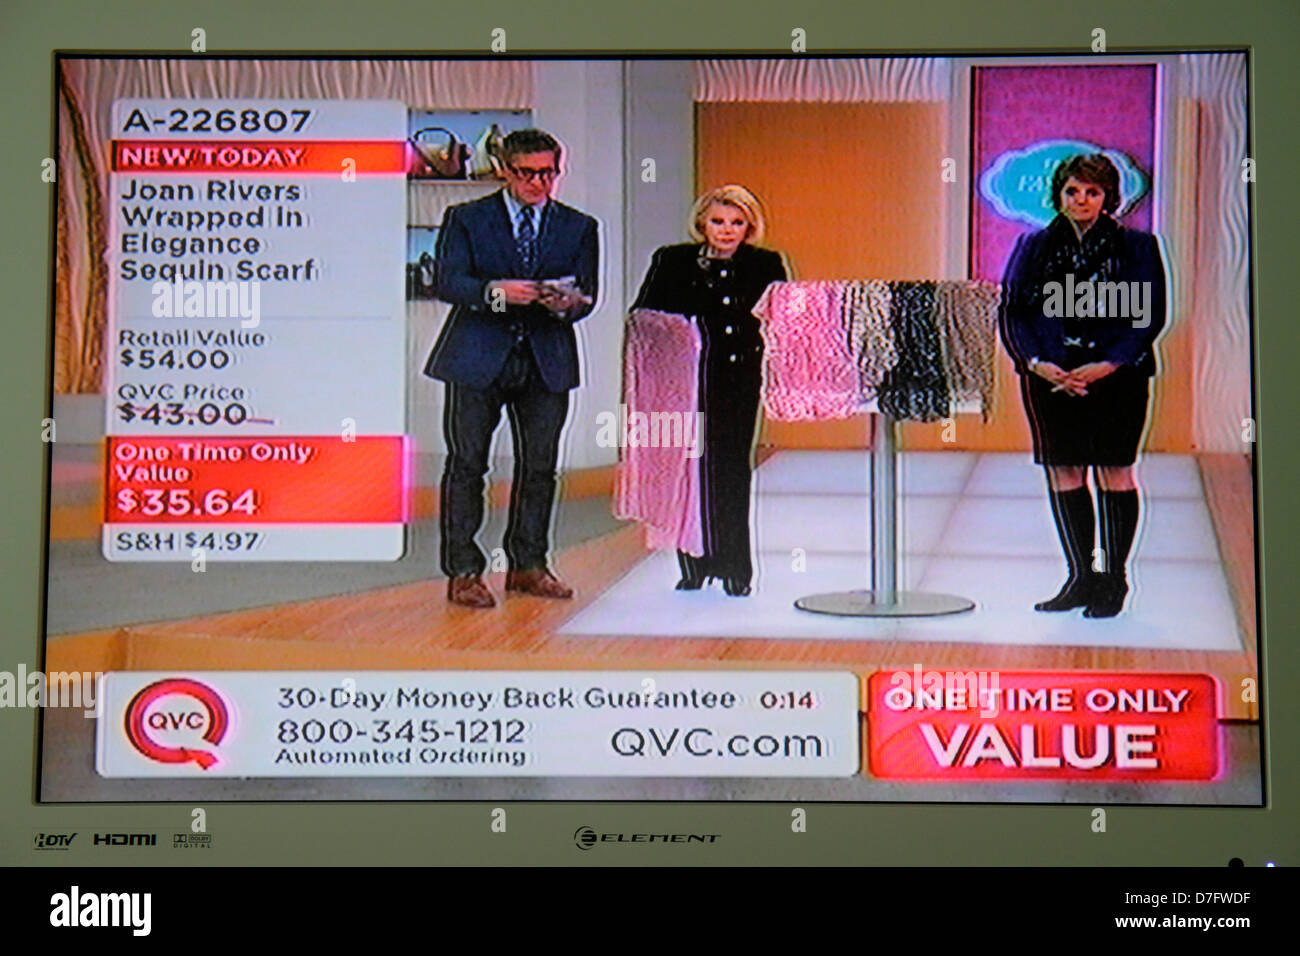 miami beach florida tv television screen flat panel hdtv monitor qvc